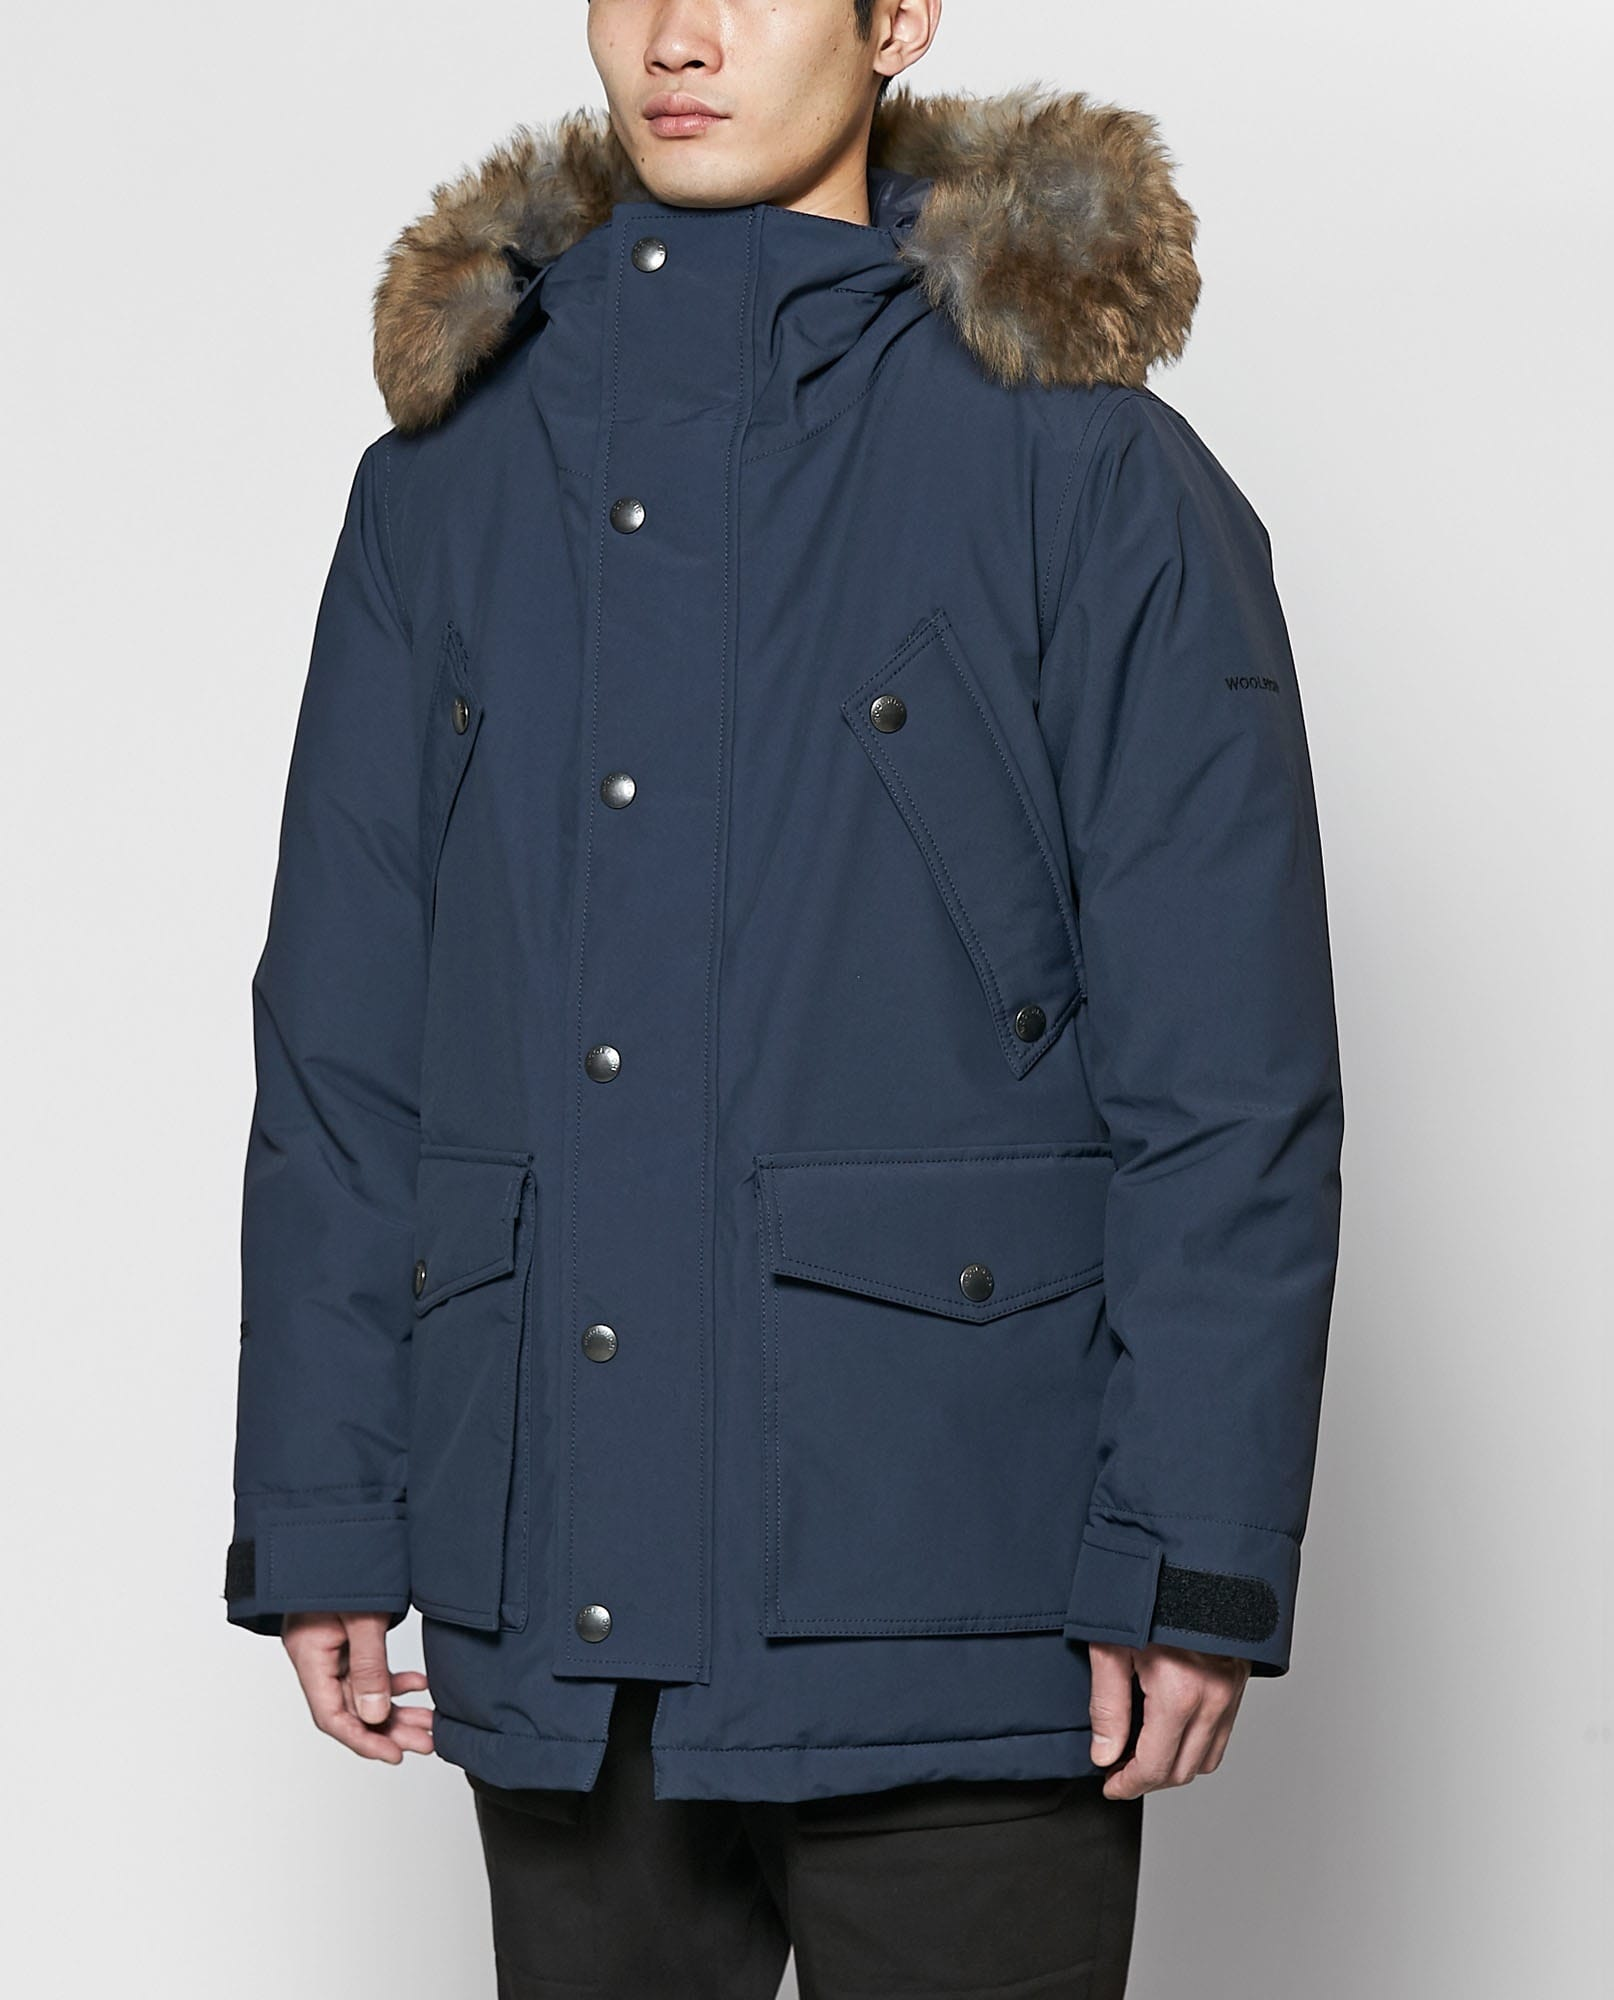 ARCTIC DOWN PARKA BYPRODUCT LAMB FUR